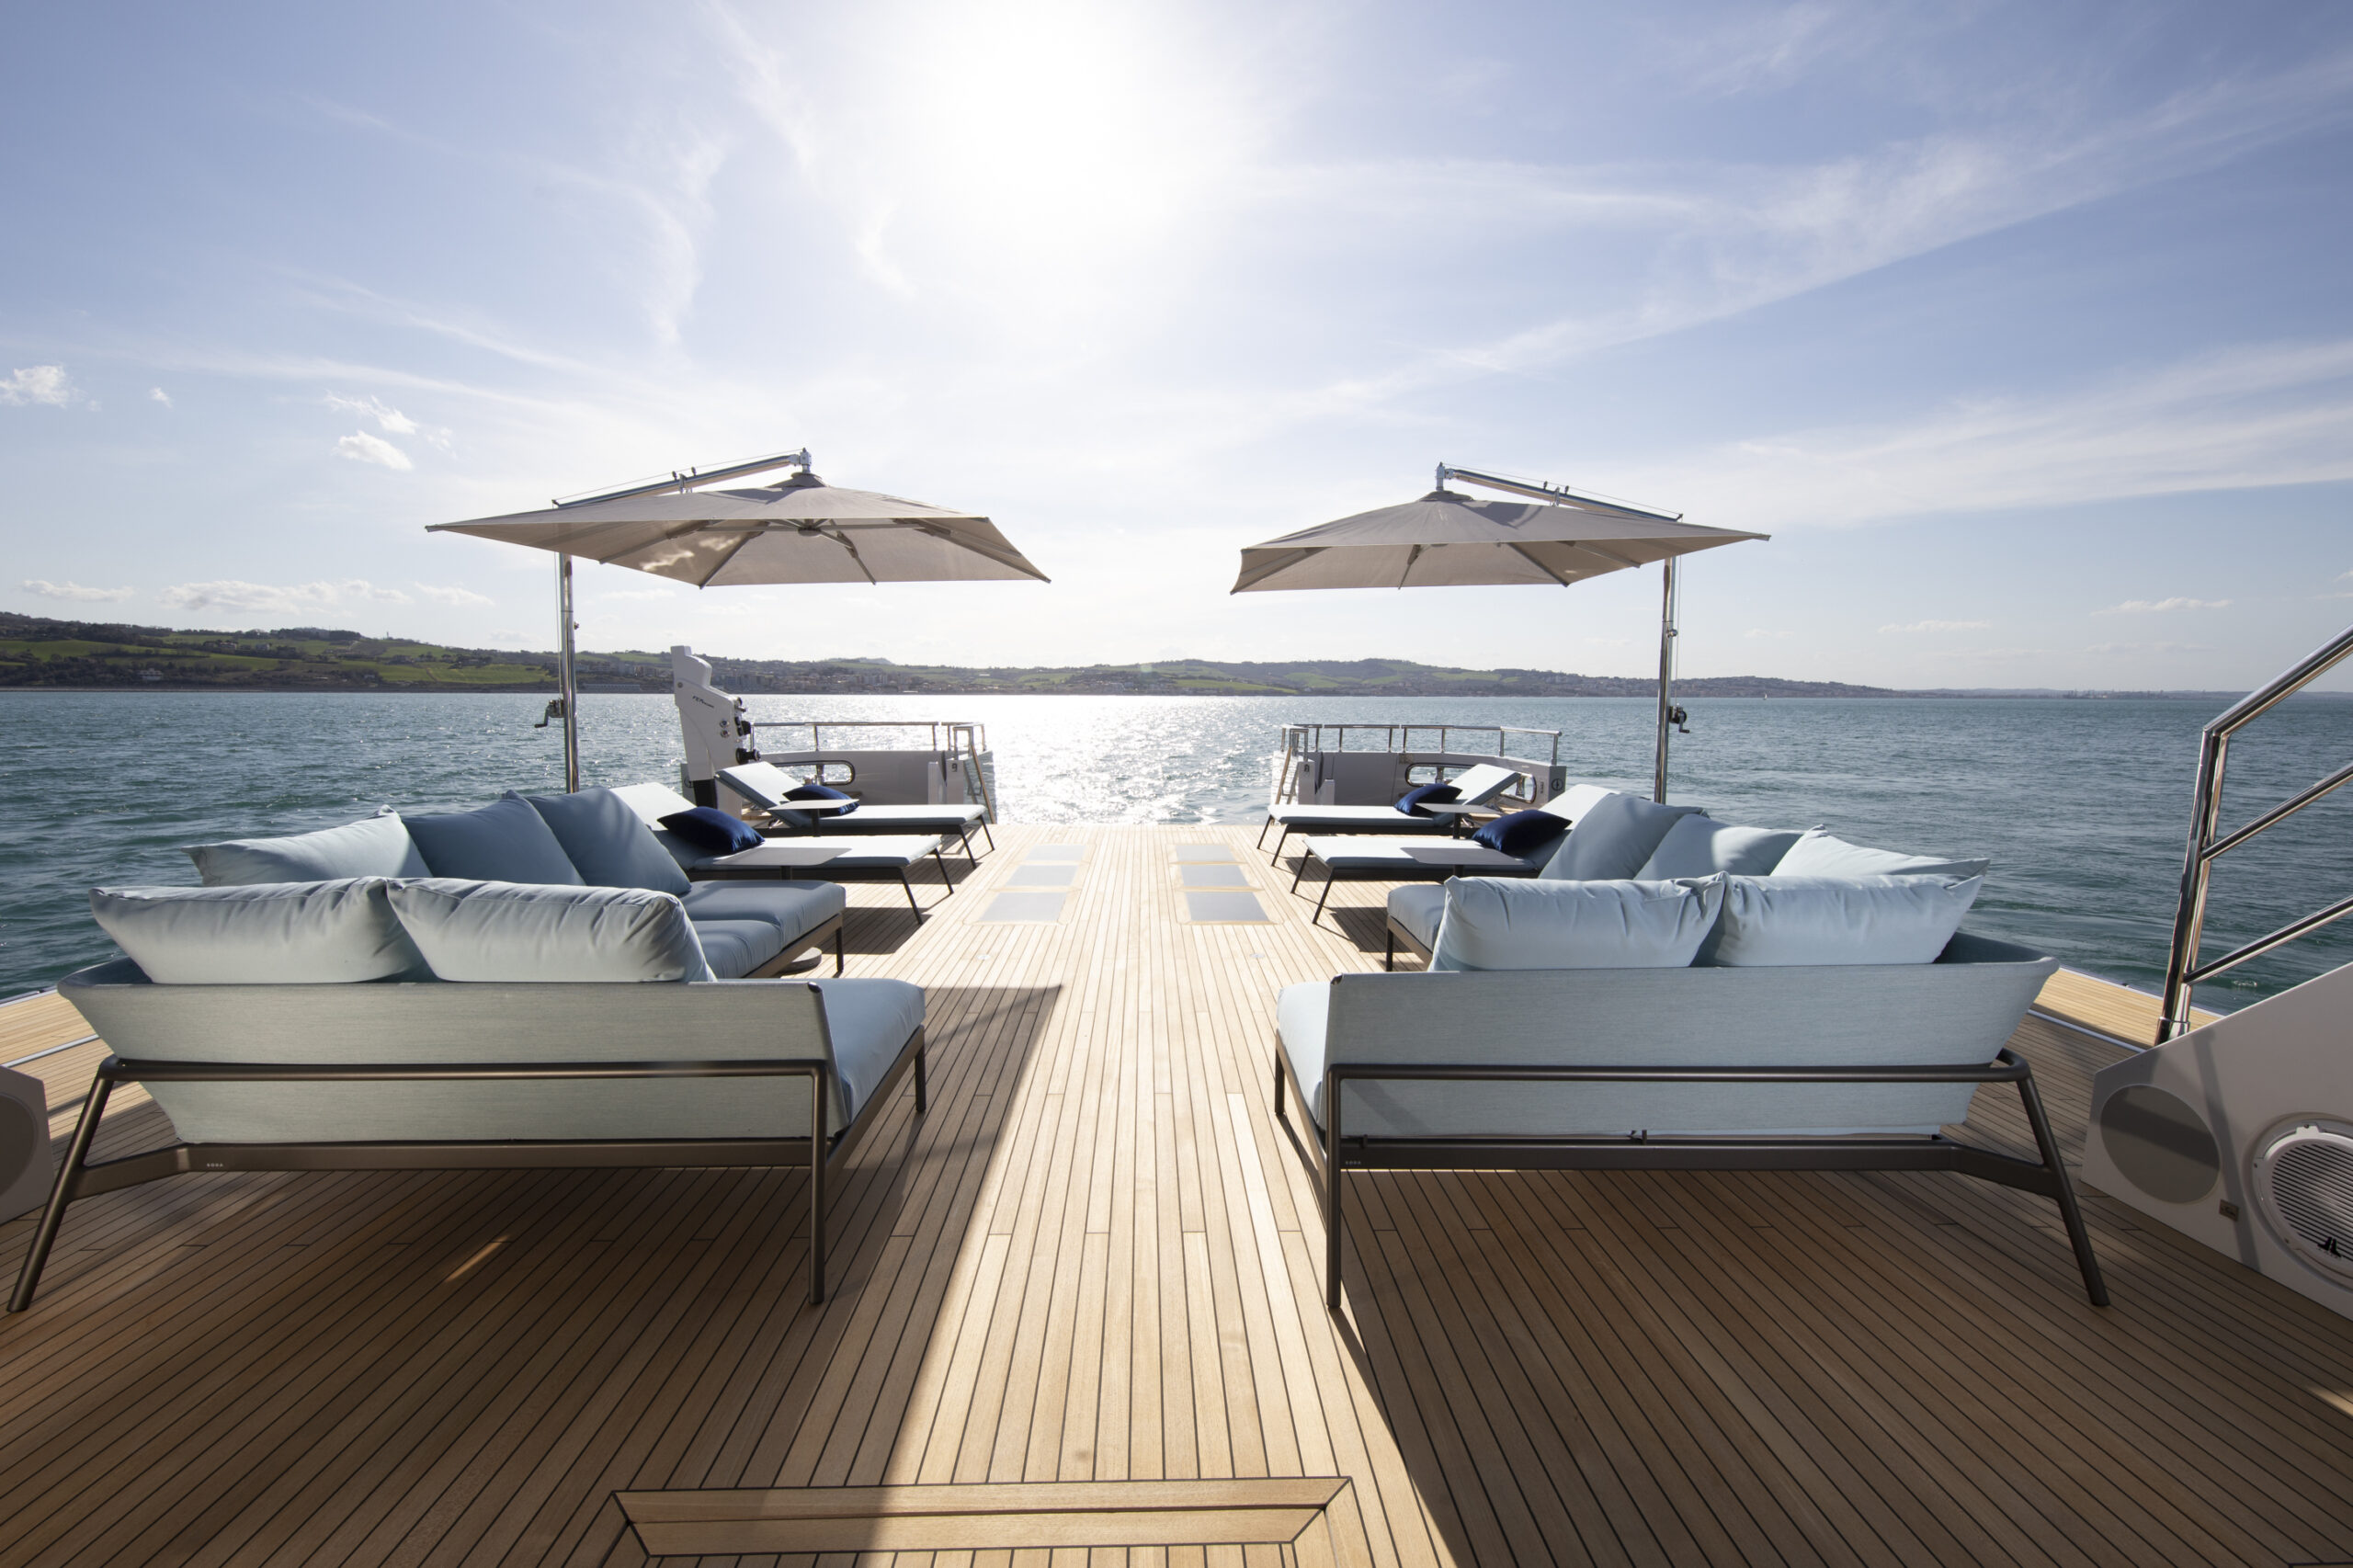 sundeck on board the Flexplorer 130 pictured with loungers in foreground and sun in background